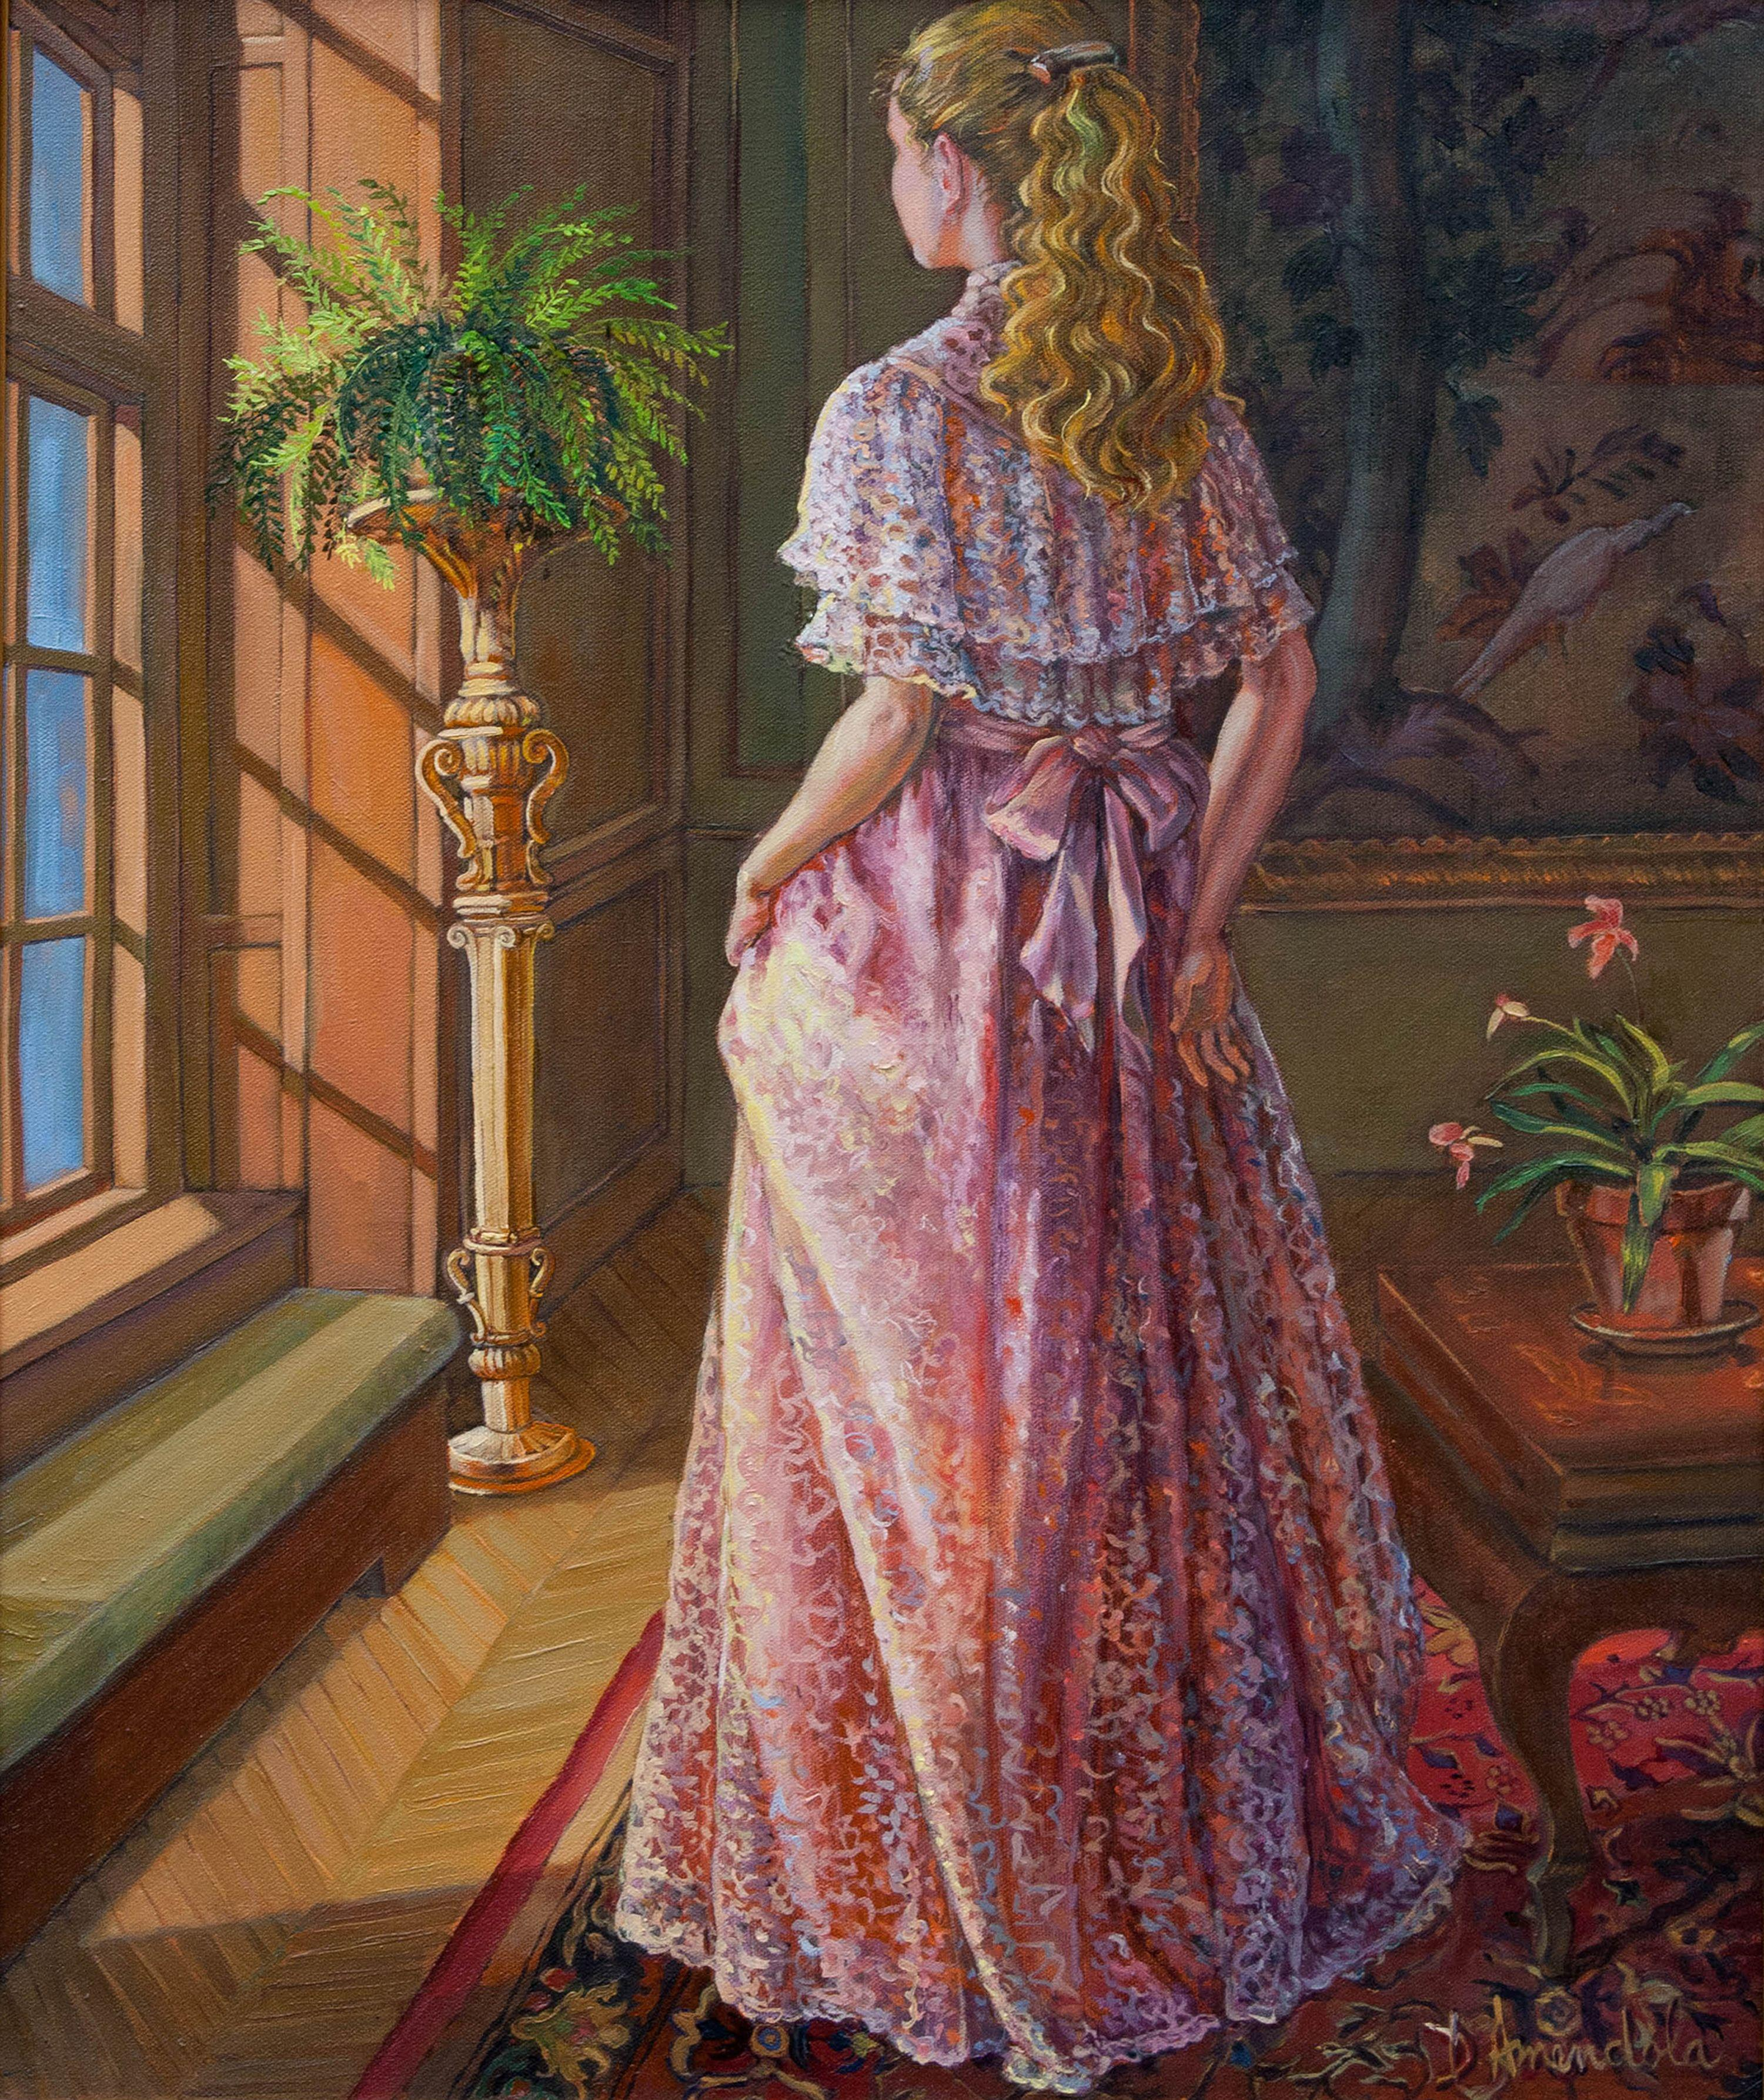 Lady Gazing Through The Window, Painting, Oil on Canvas